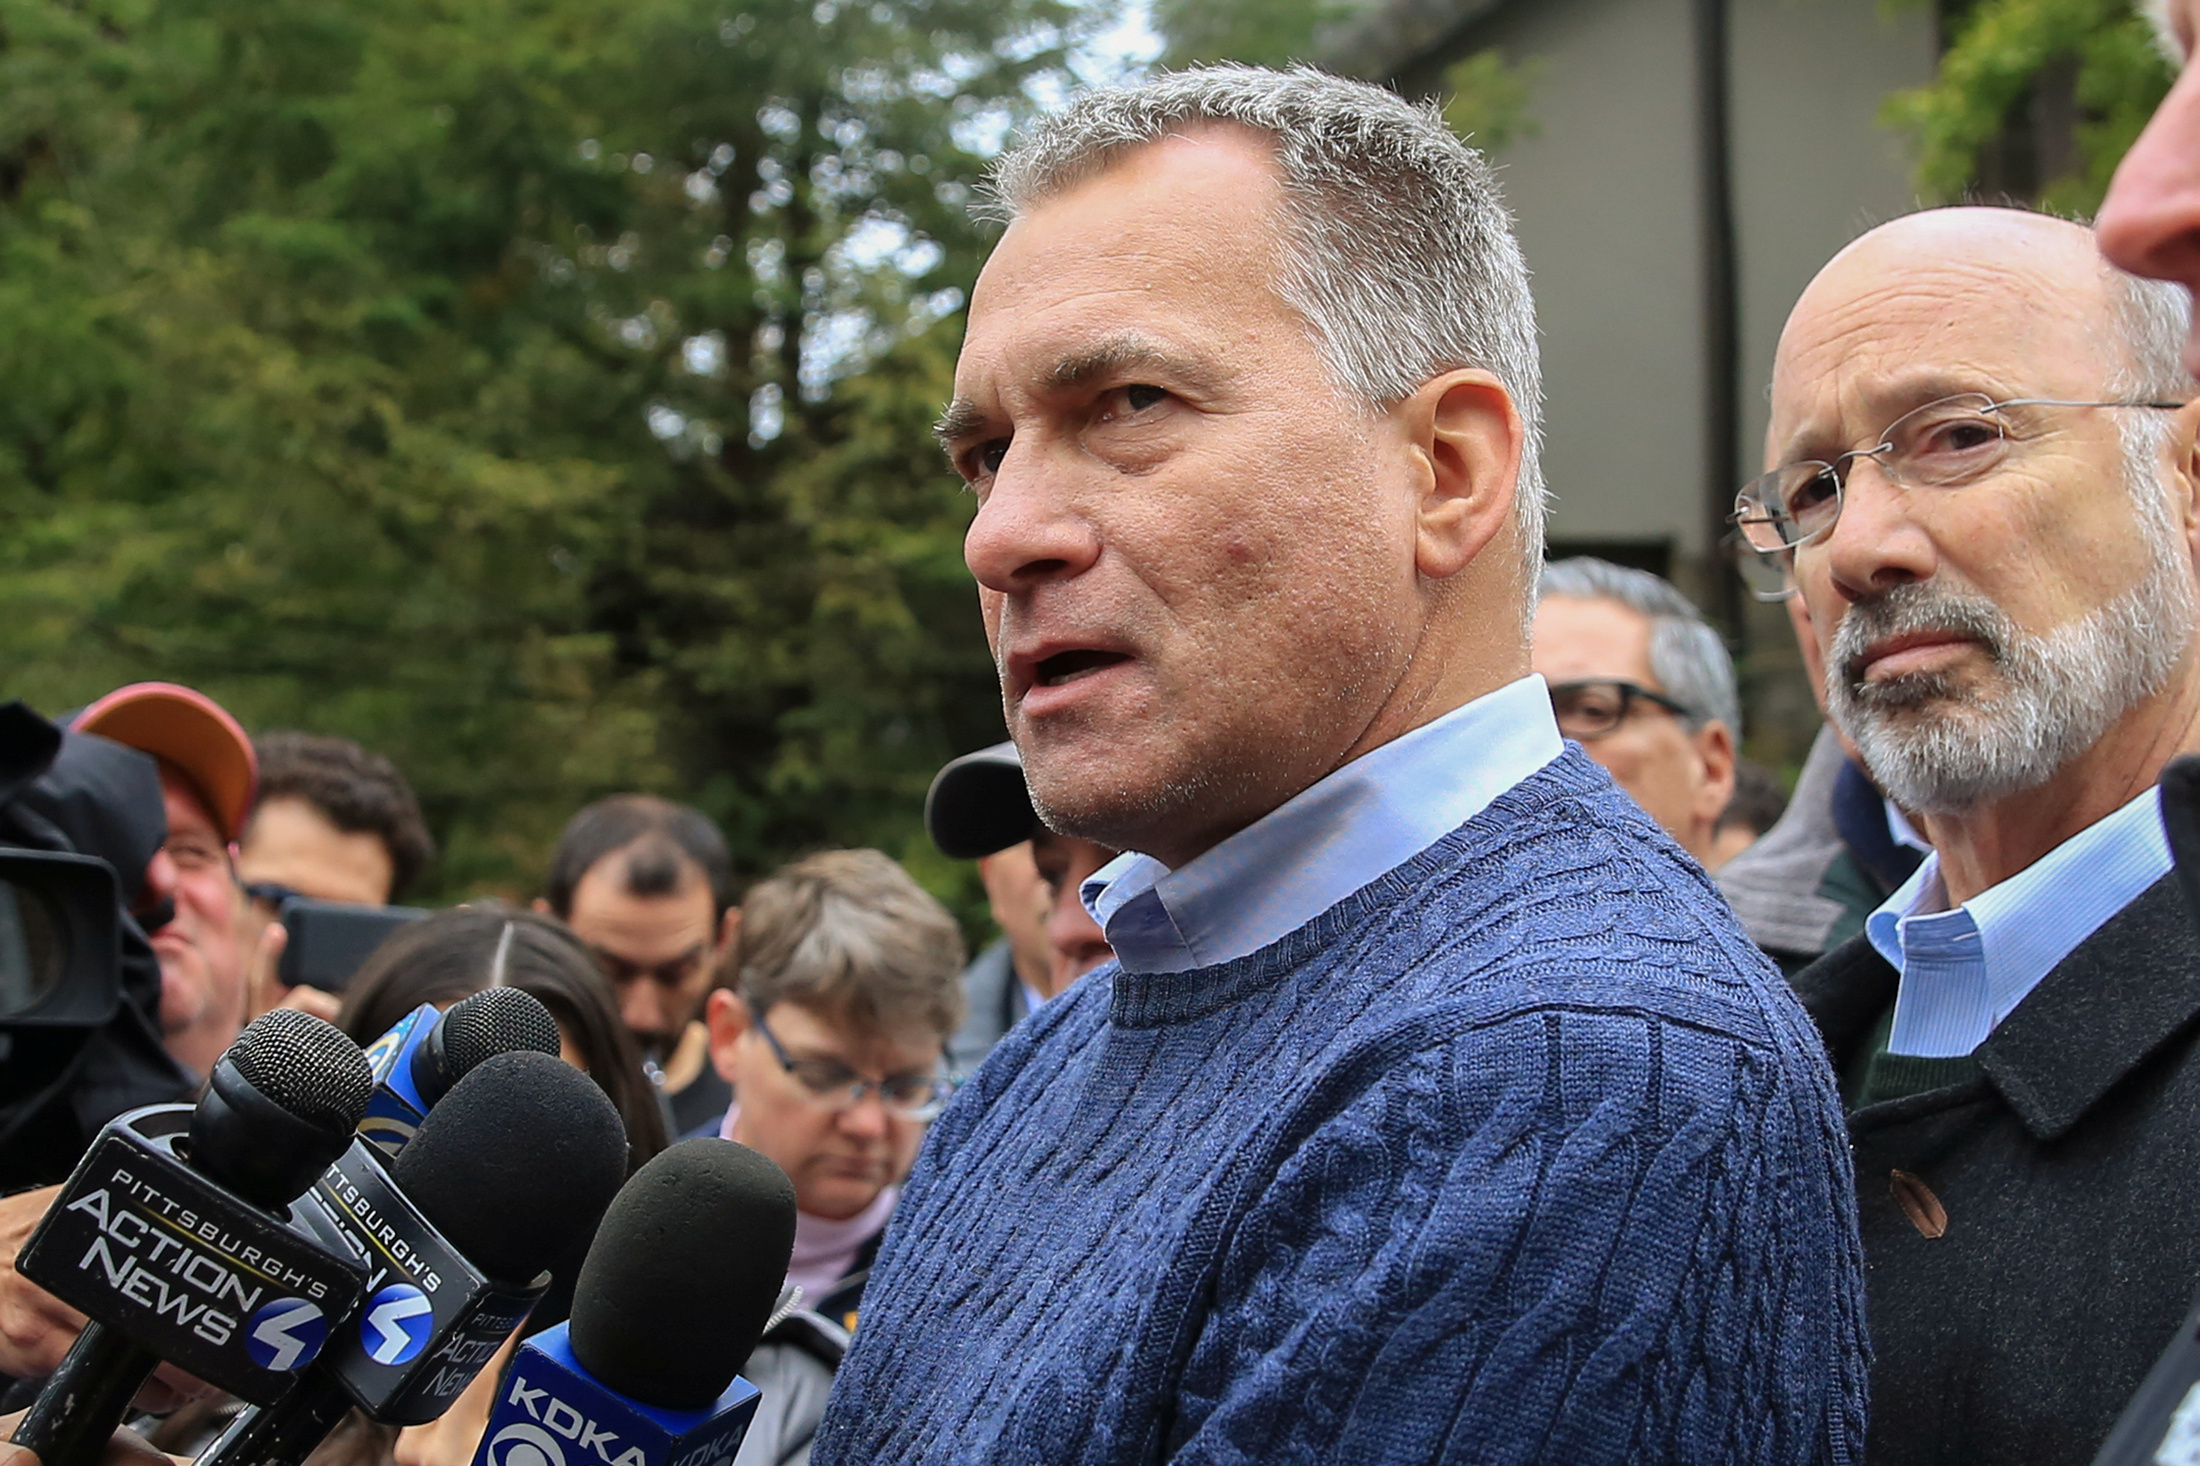 Wendell Hissrich, Pittsburgh public safety director, speaks to media as Pennsylvania Governor Tom Wolf, right, looks on after a gunman opened fire at the Tree of Life synagogue in Pittsburgh, Pa., Oct. 27, 2018.